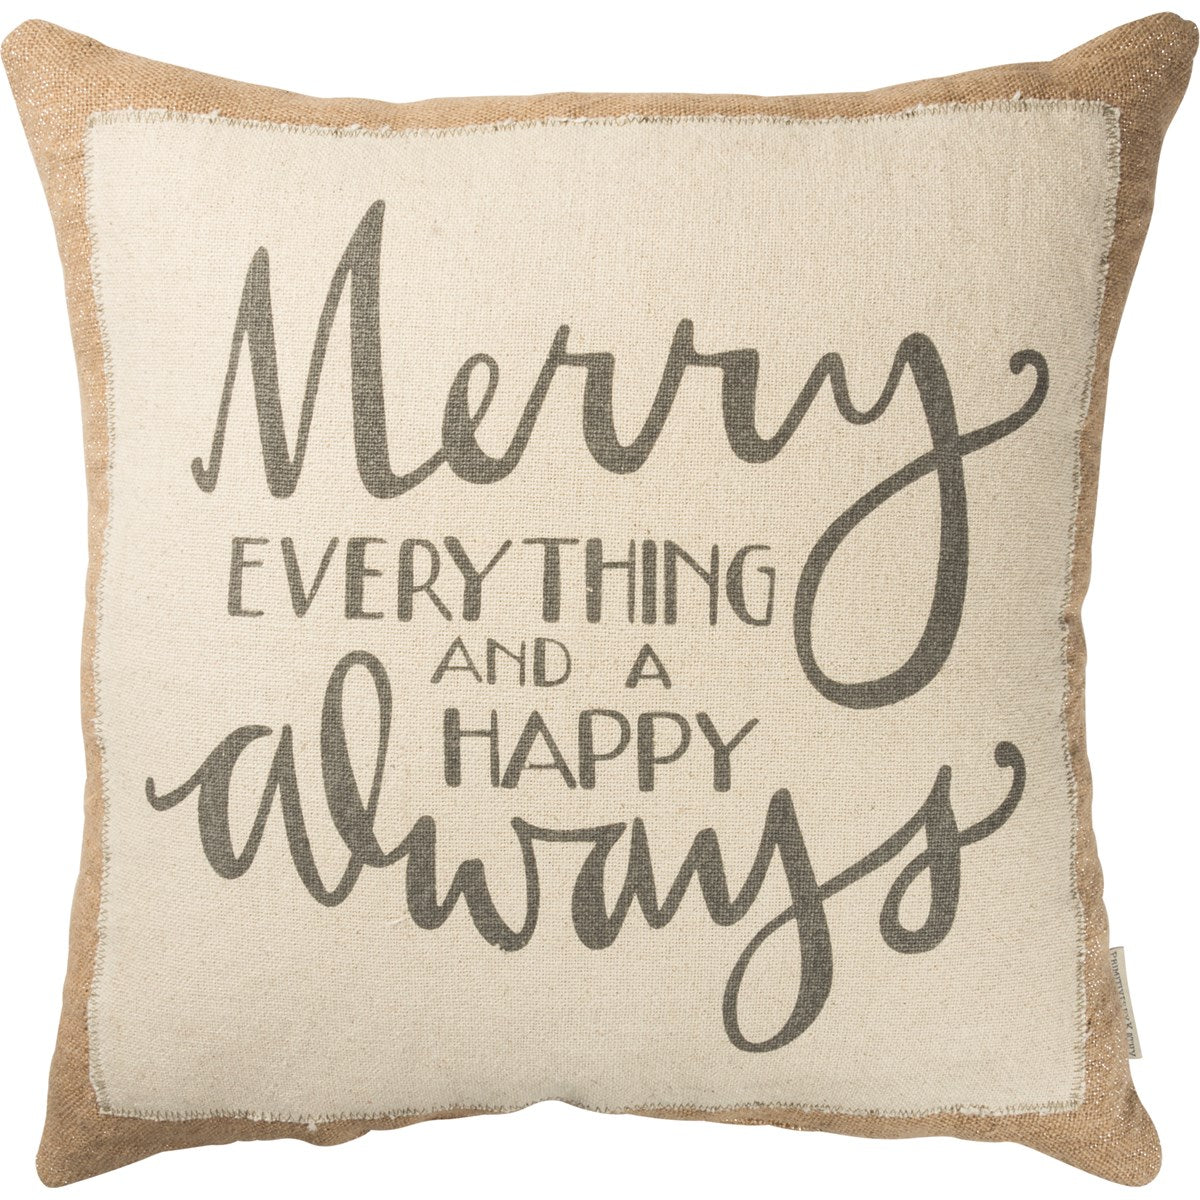 Merry Everything Pillow - Vintage Crossroads